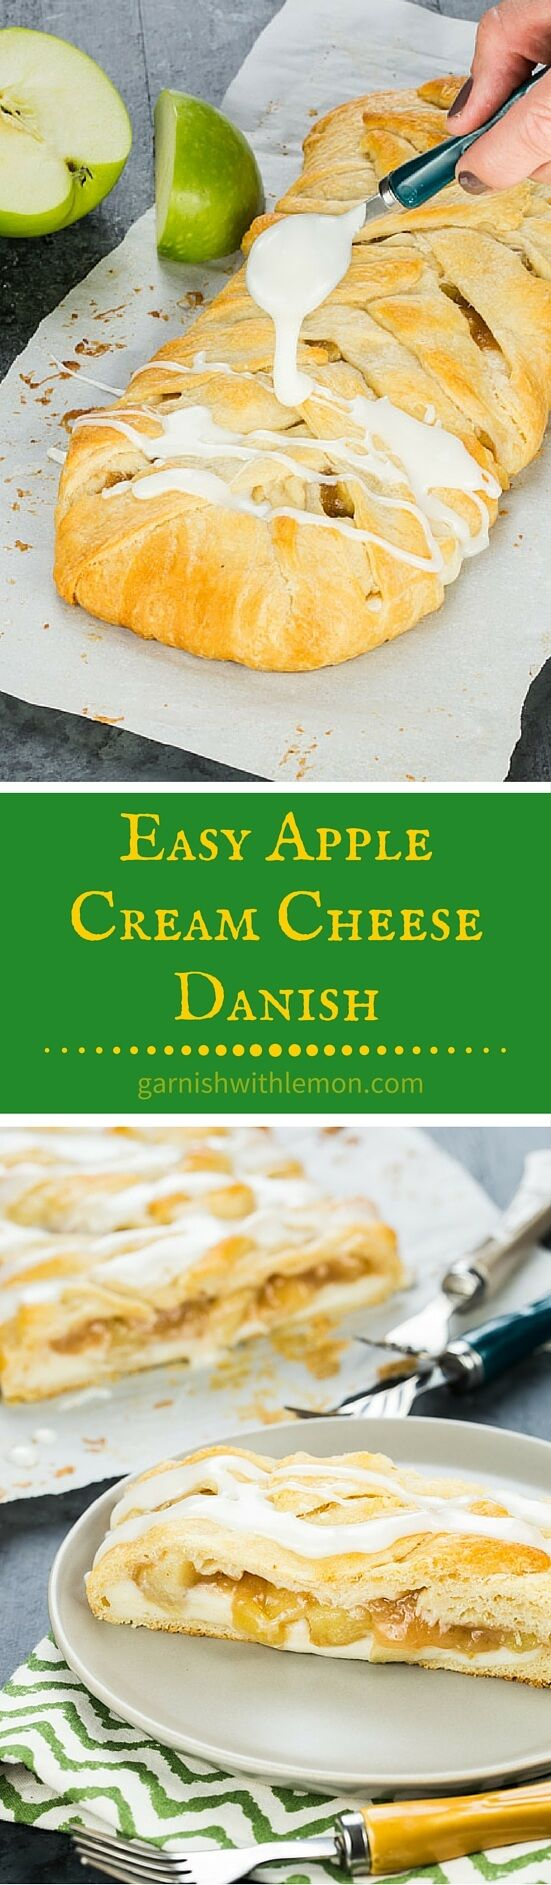 All Food and Drink: Easy Apple Cream Cheese Danish Recipe